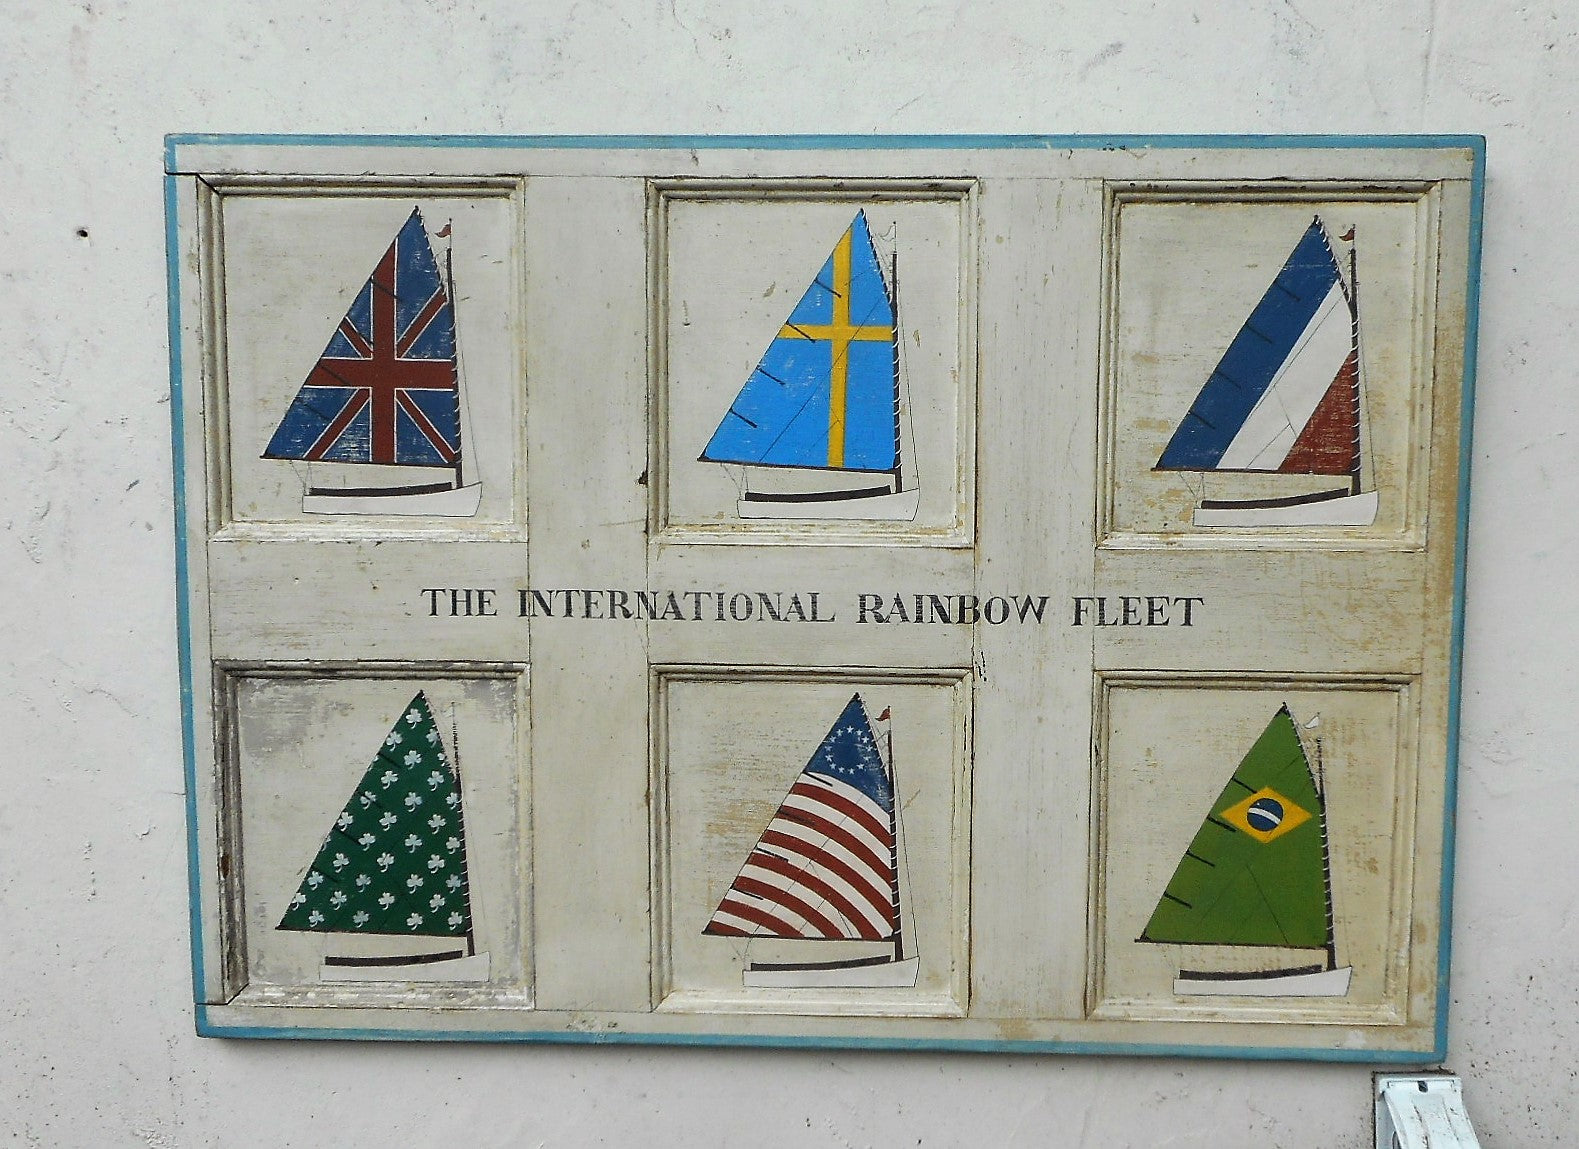 Rainbow Fleet on Antique Door